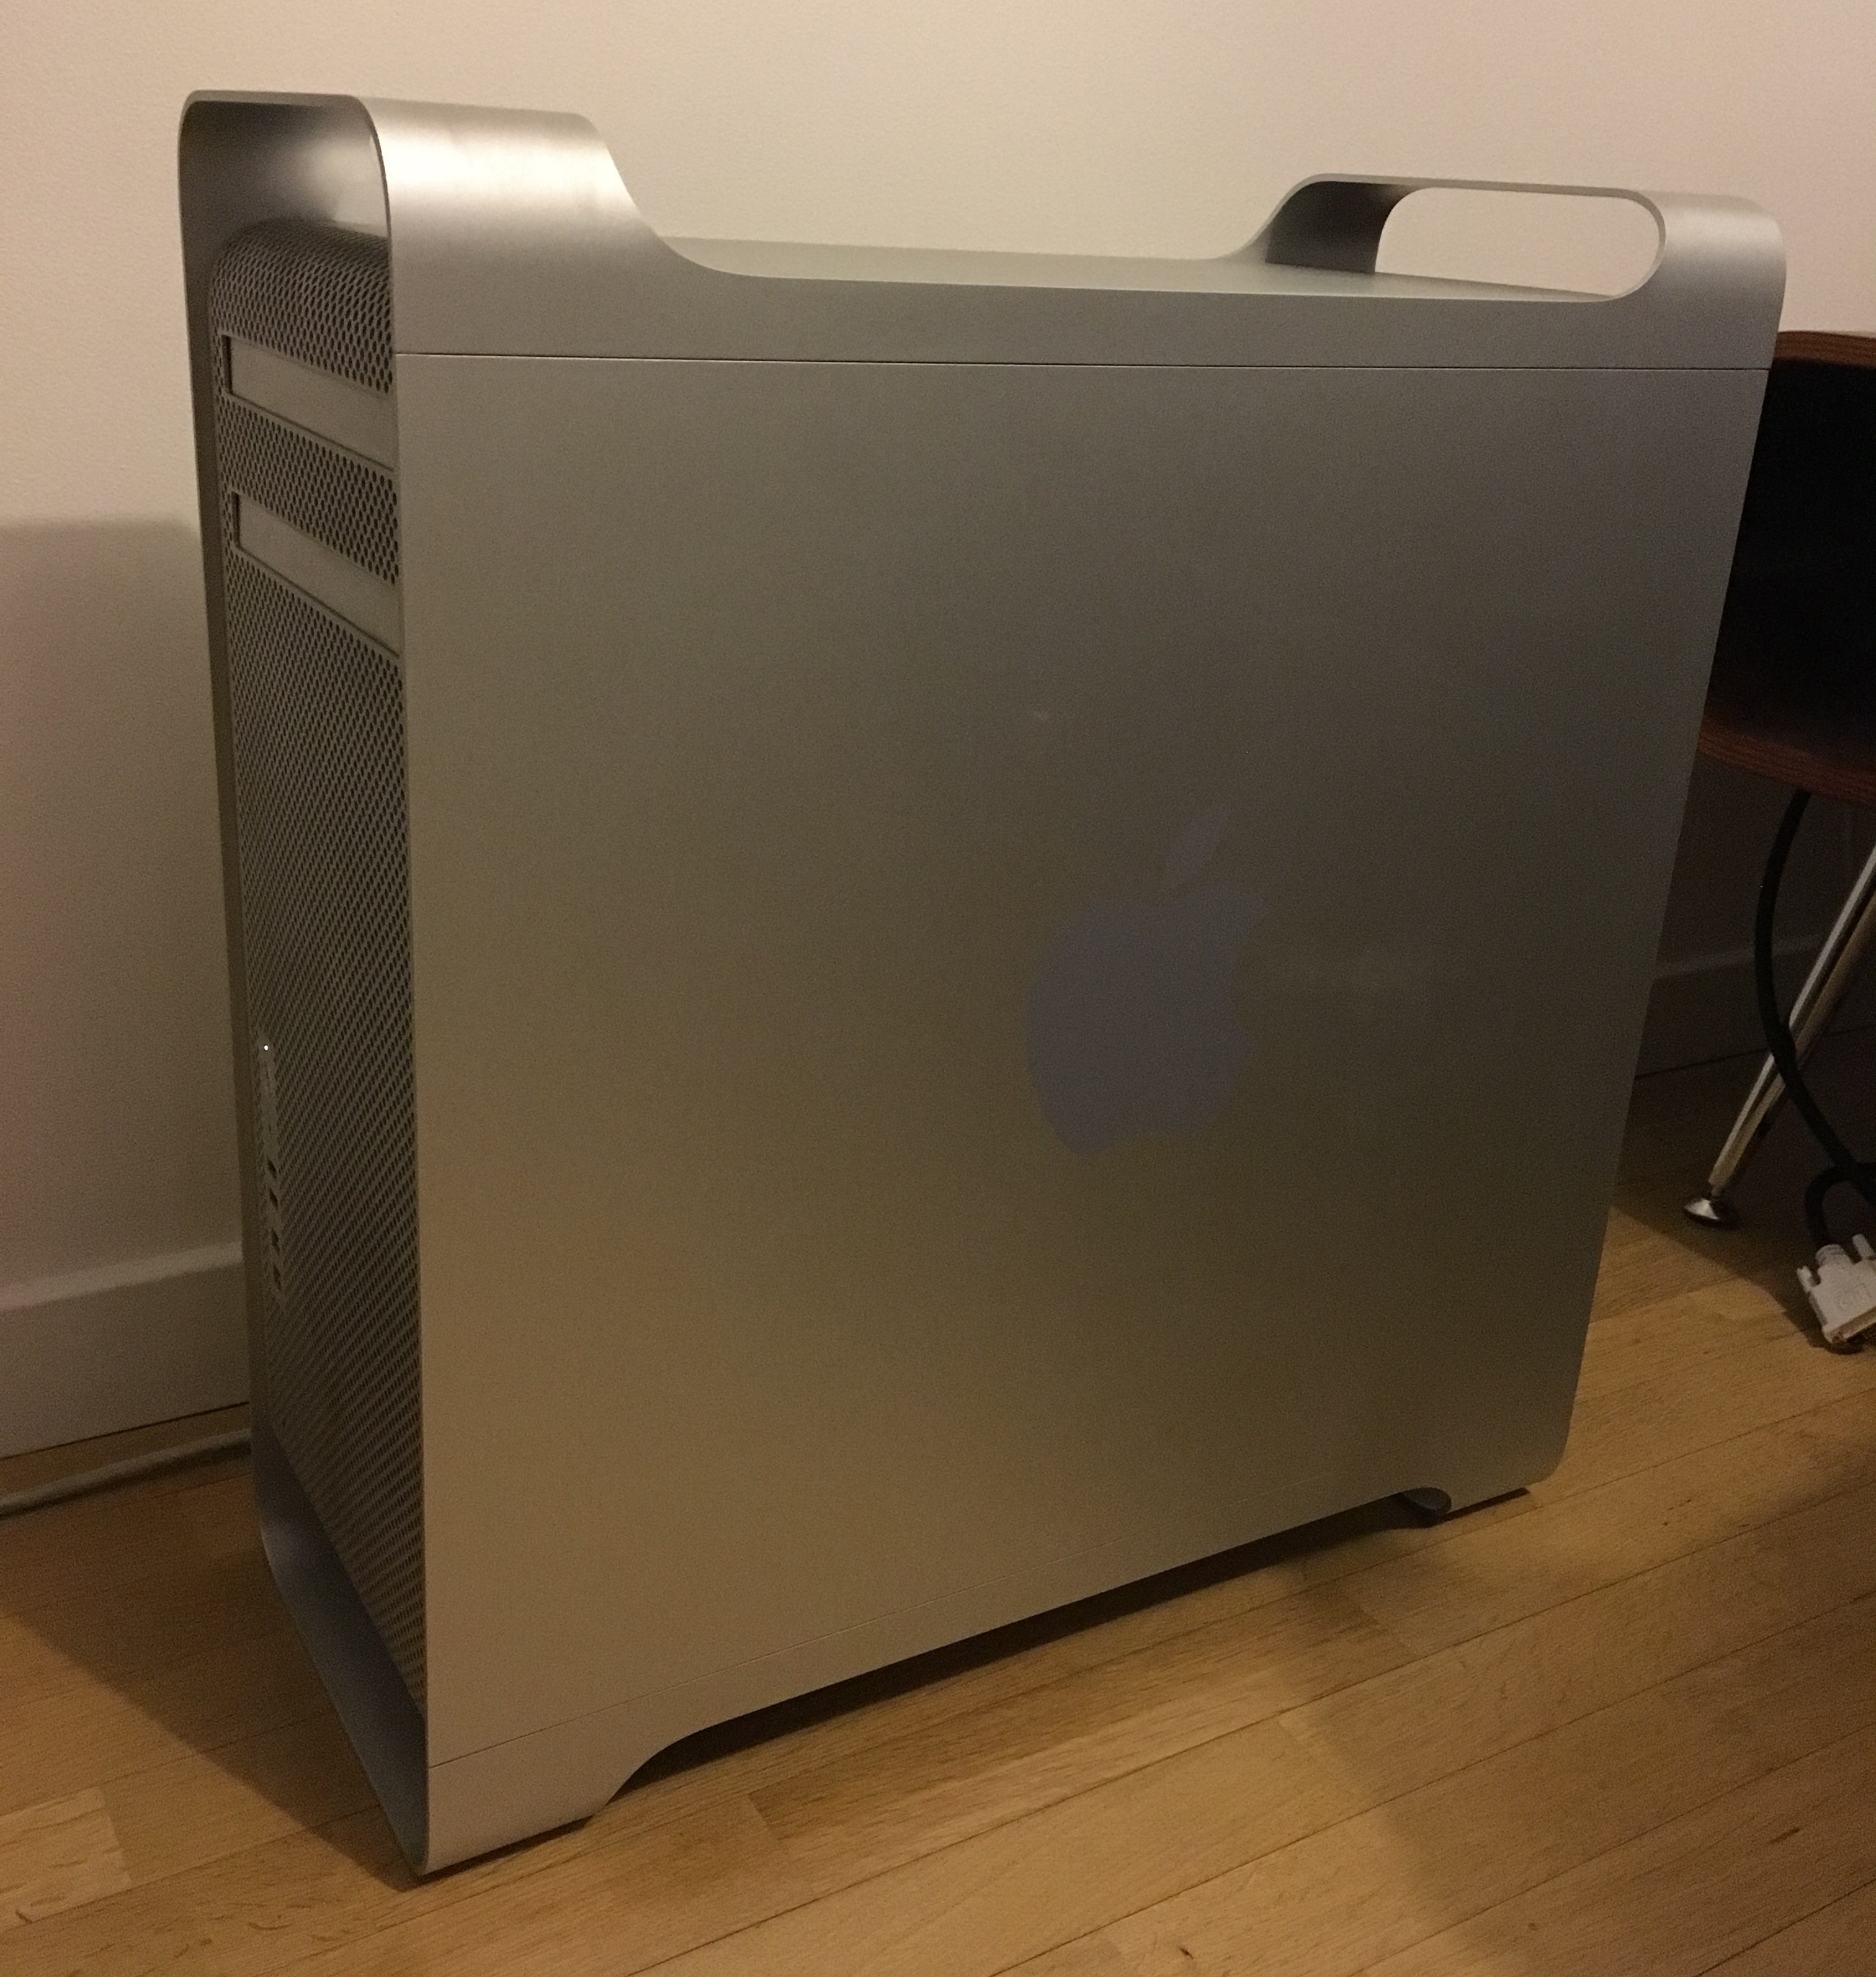 Mac Pro (Early 2009) + Logic Studio 2